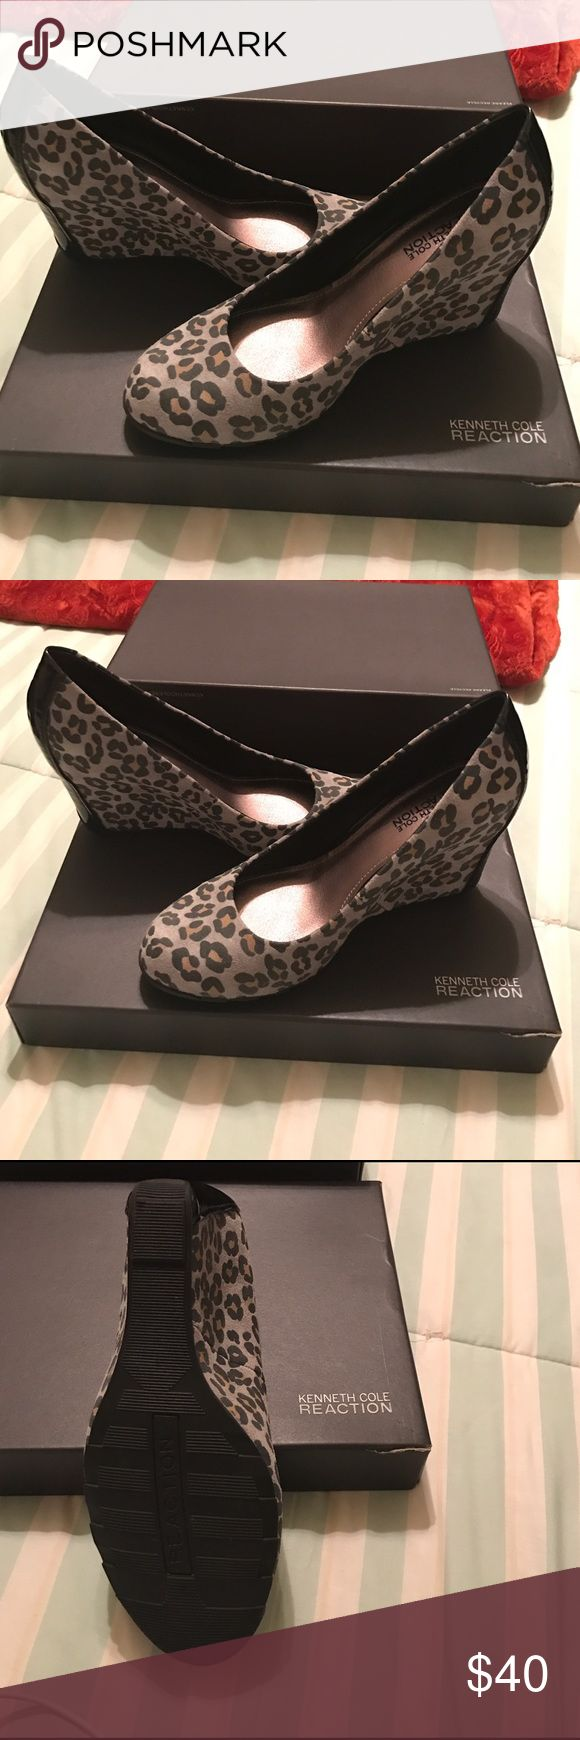 Kenneth Cole ladies shoes 7.5 Ladies navy blue and cheetah print Kenneth Cole shoes. Only wore twice, needs a good home! Kenneth Cole Reaction Shoes Wedges